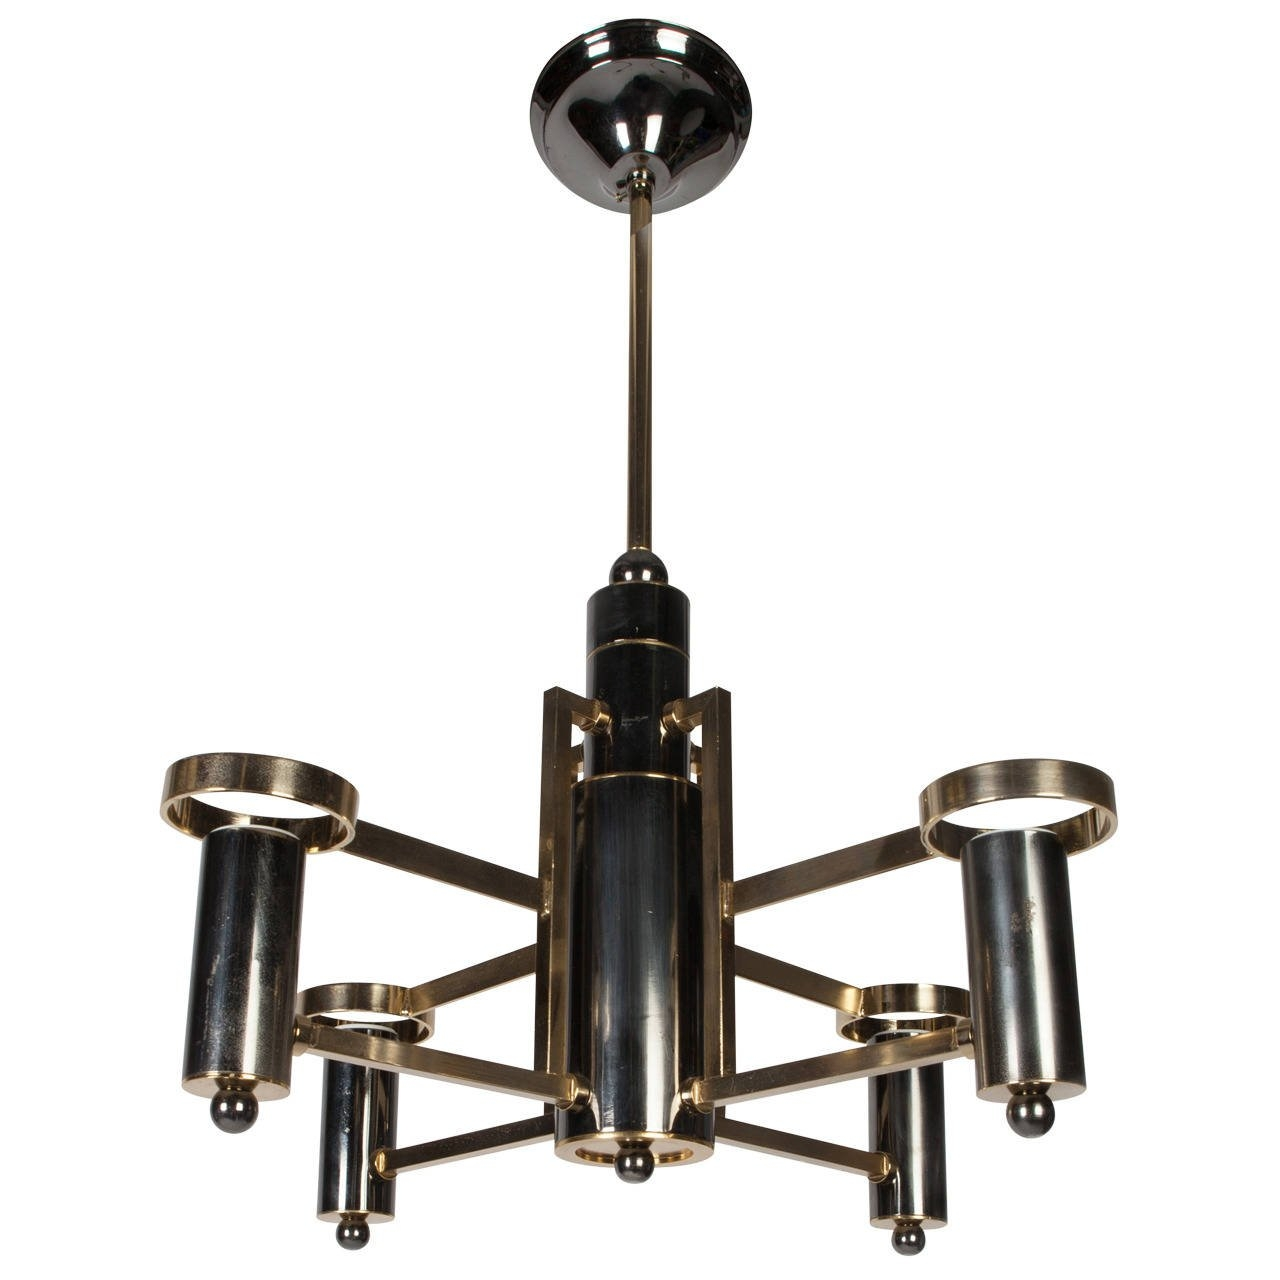 Vintage Chrome Chandelier For Sale At 1stdibs Throughout Chrome Chandelier (View 12 of 15)